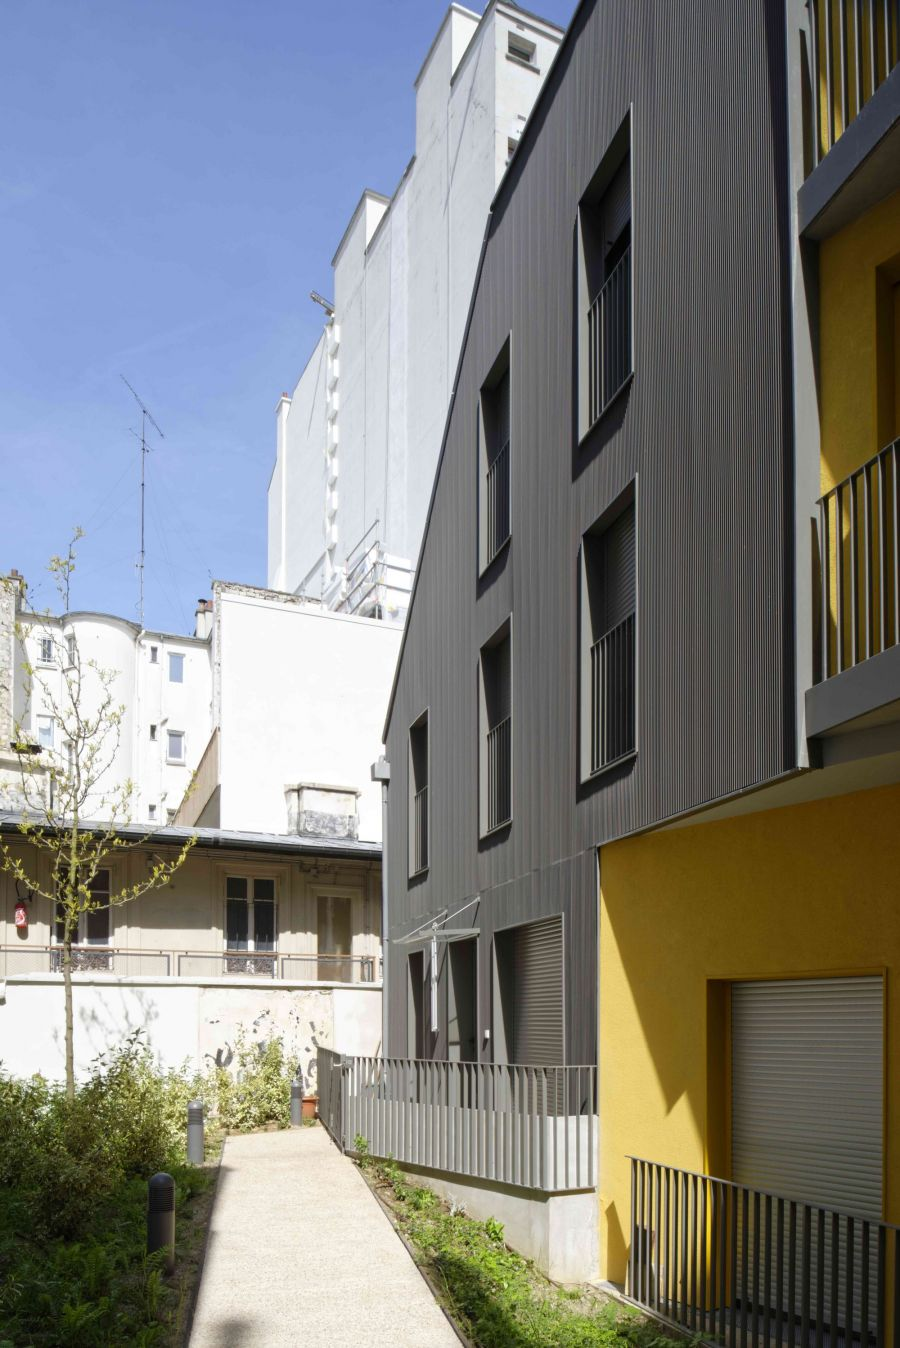 16 logements collectifs - Arch. F. Commerçon architect, Verdier + Rebiere architects - Photo : Nicolas Fussler